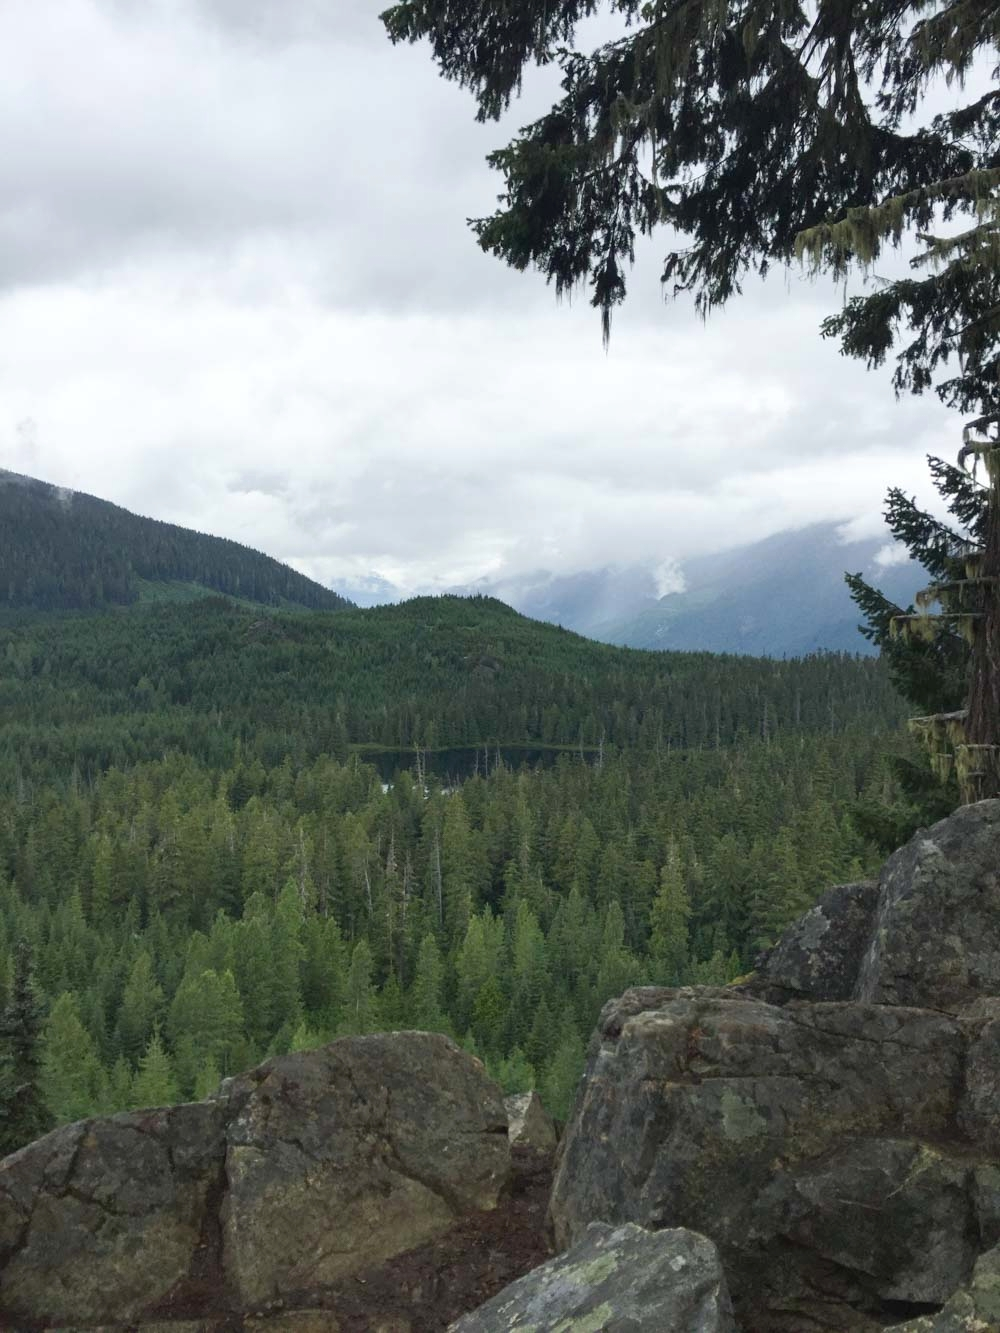 View from the top of Ancient Cedars Trail.